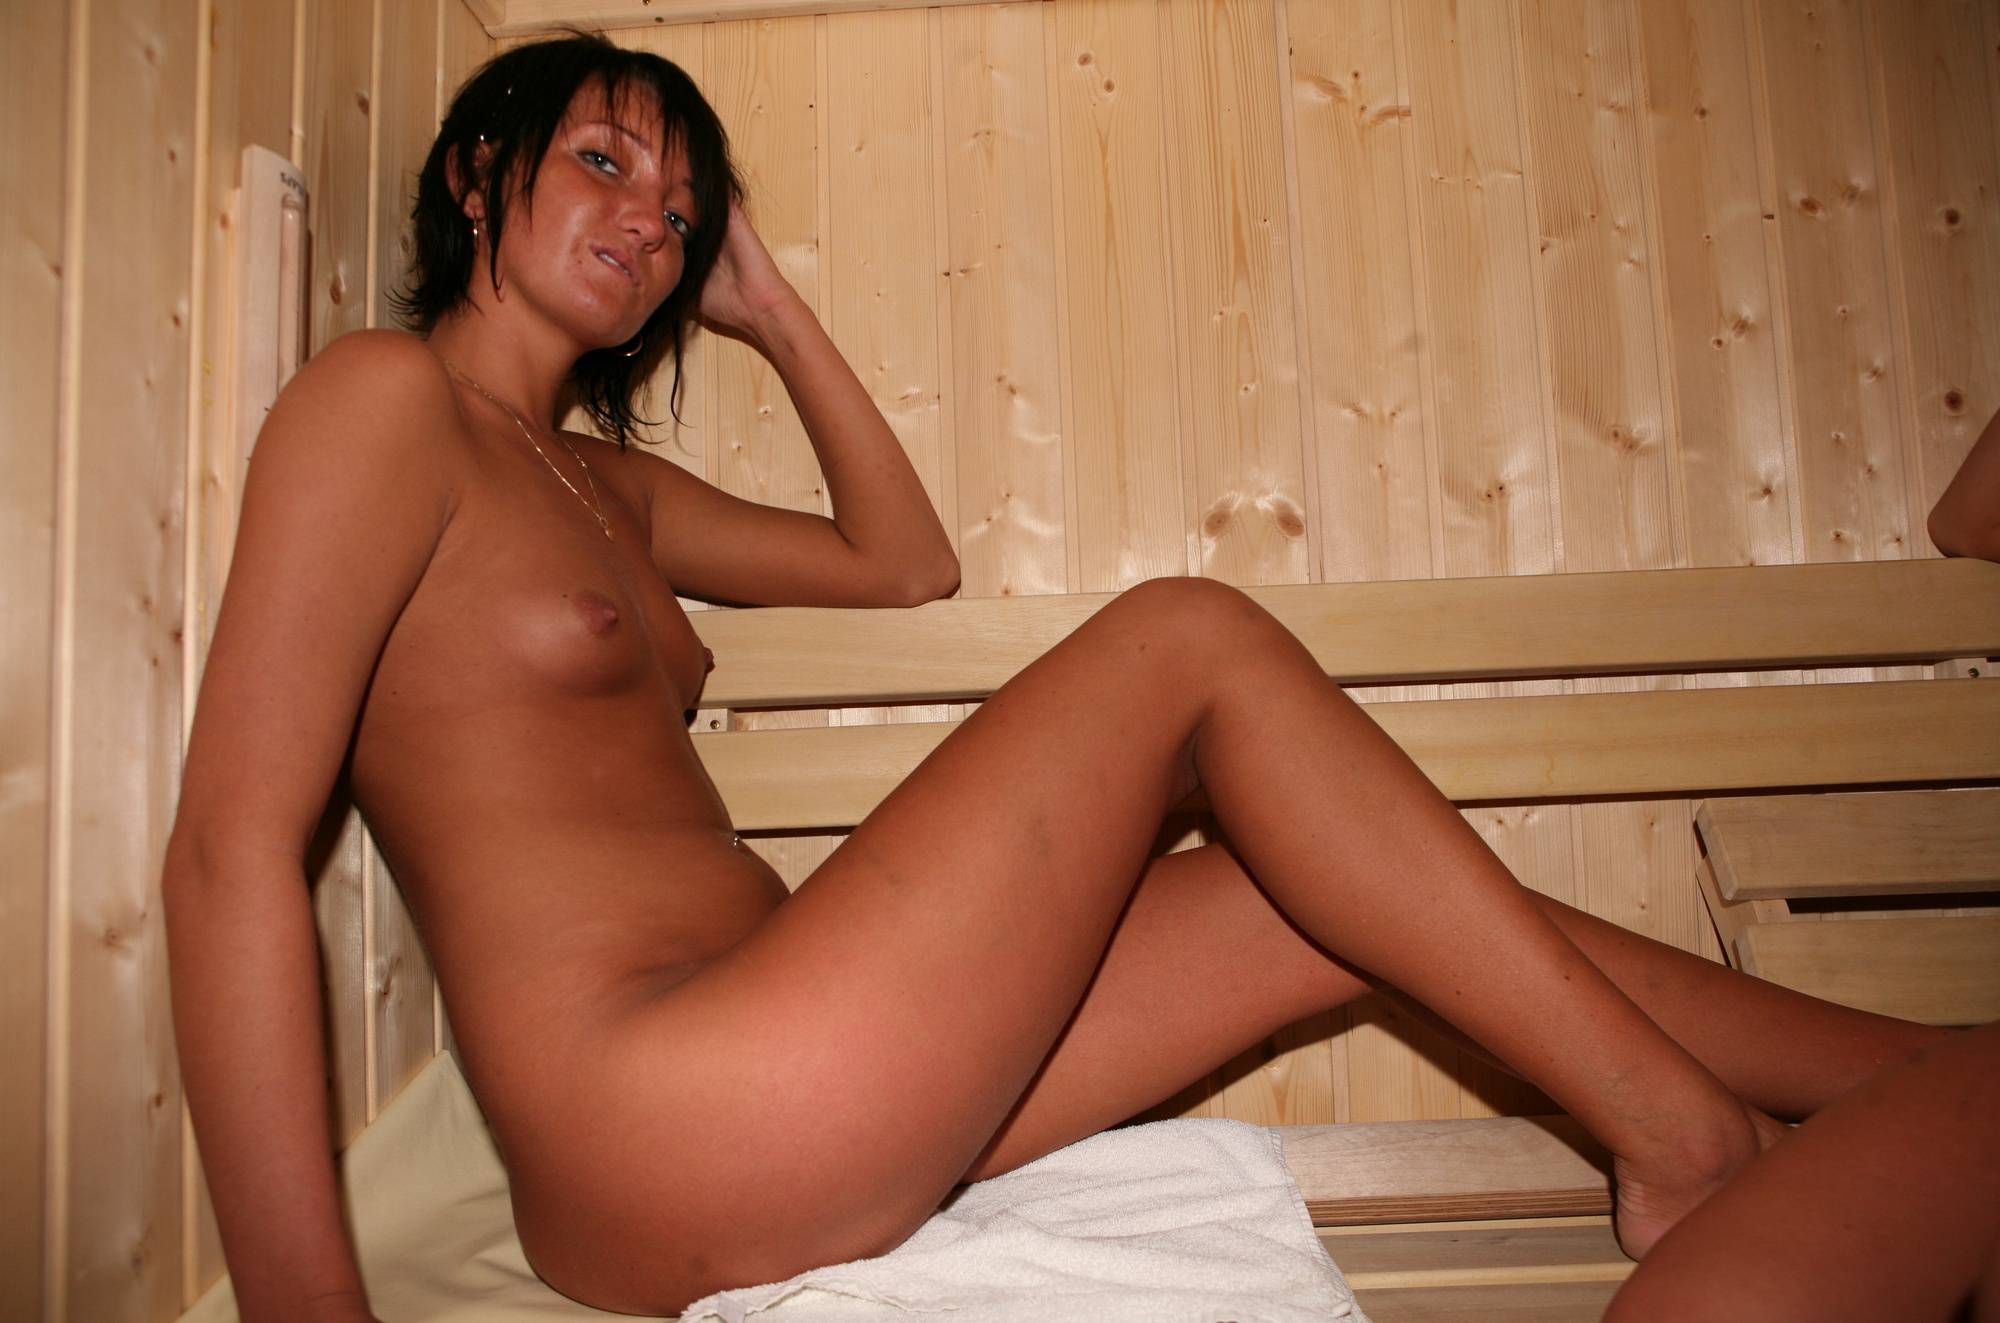 Pure Nudism Images-Jacuzzi Sauna Relaxation - 1